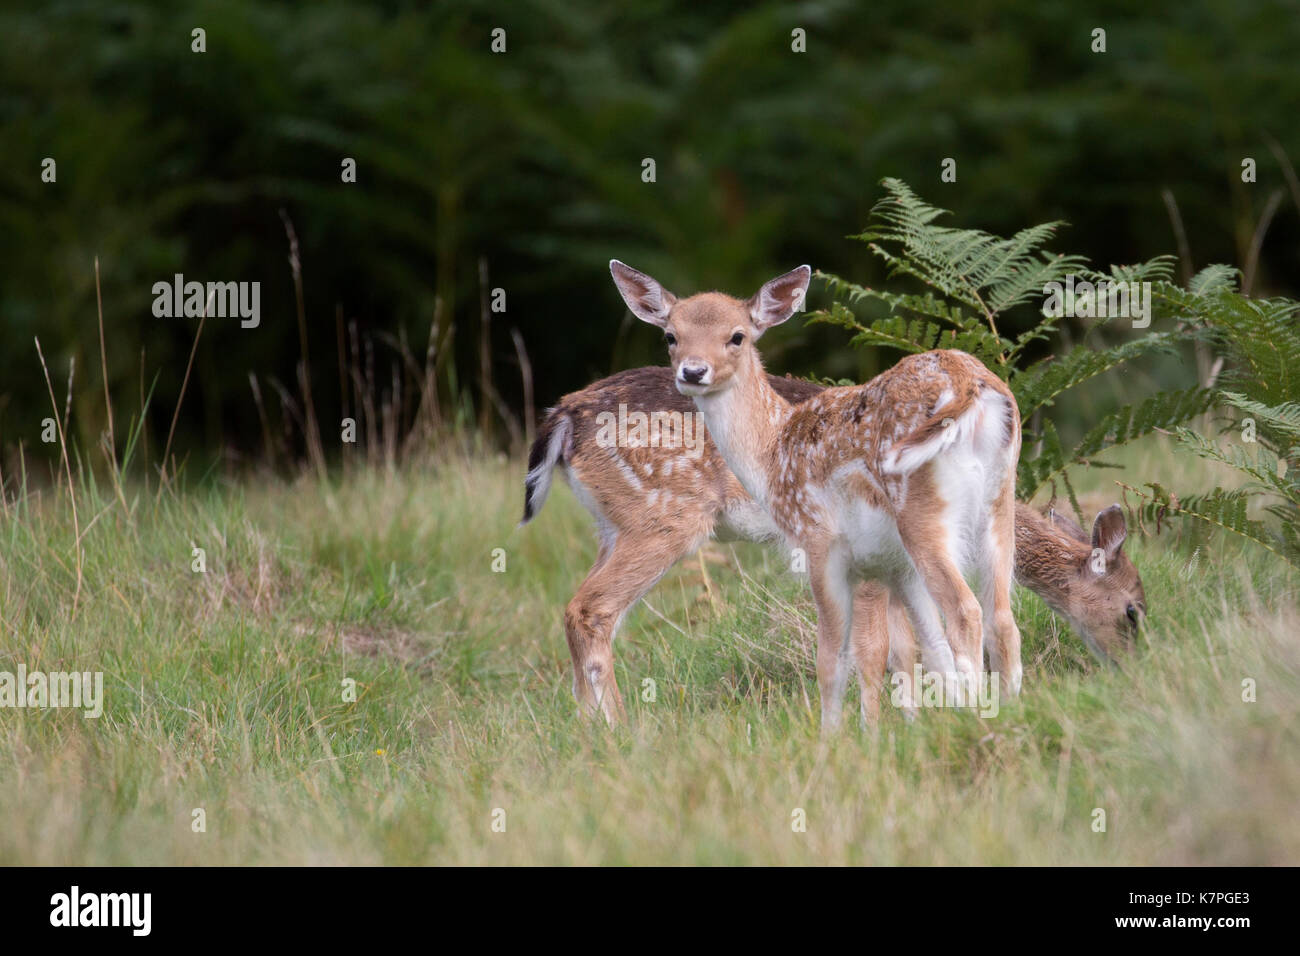 Two young Fallow Deer in a small grass clearing among some tall ferns. One looking at the camera & one eating grass. Stock Photo